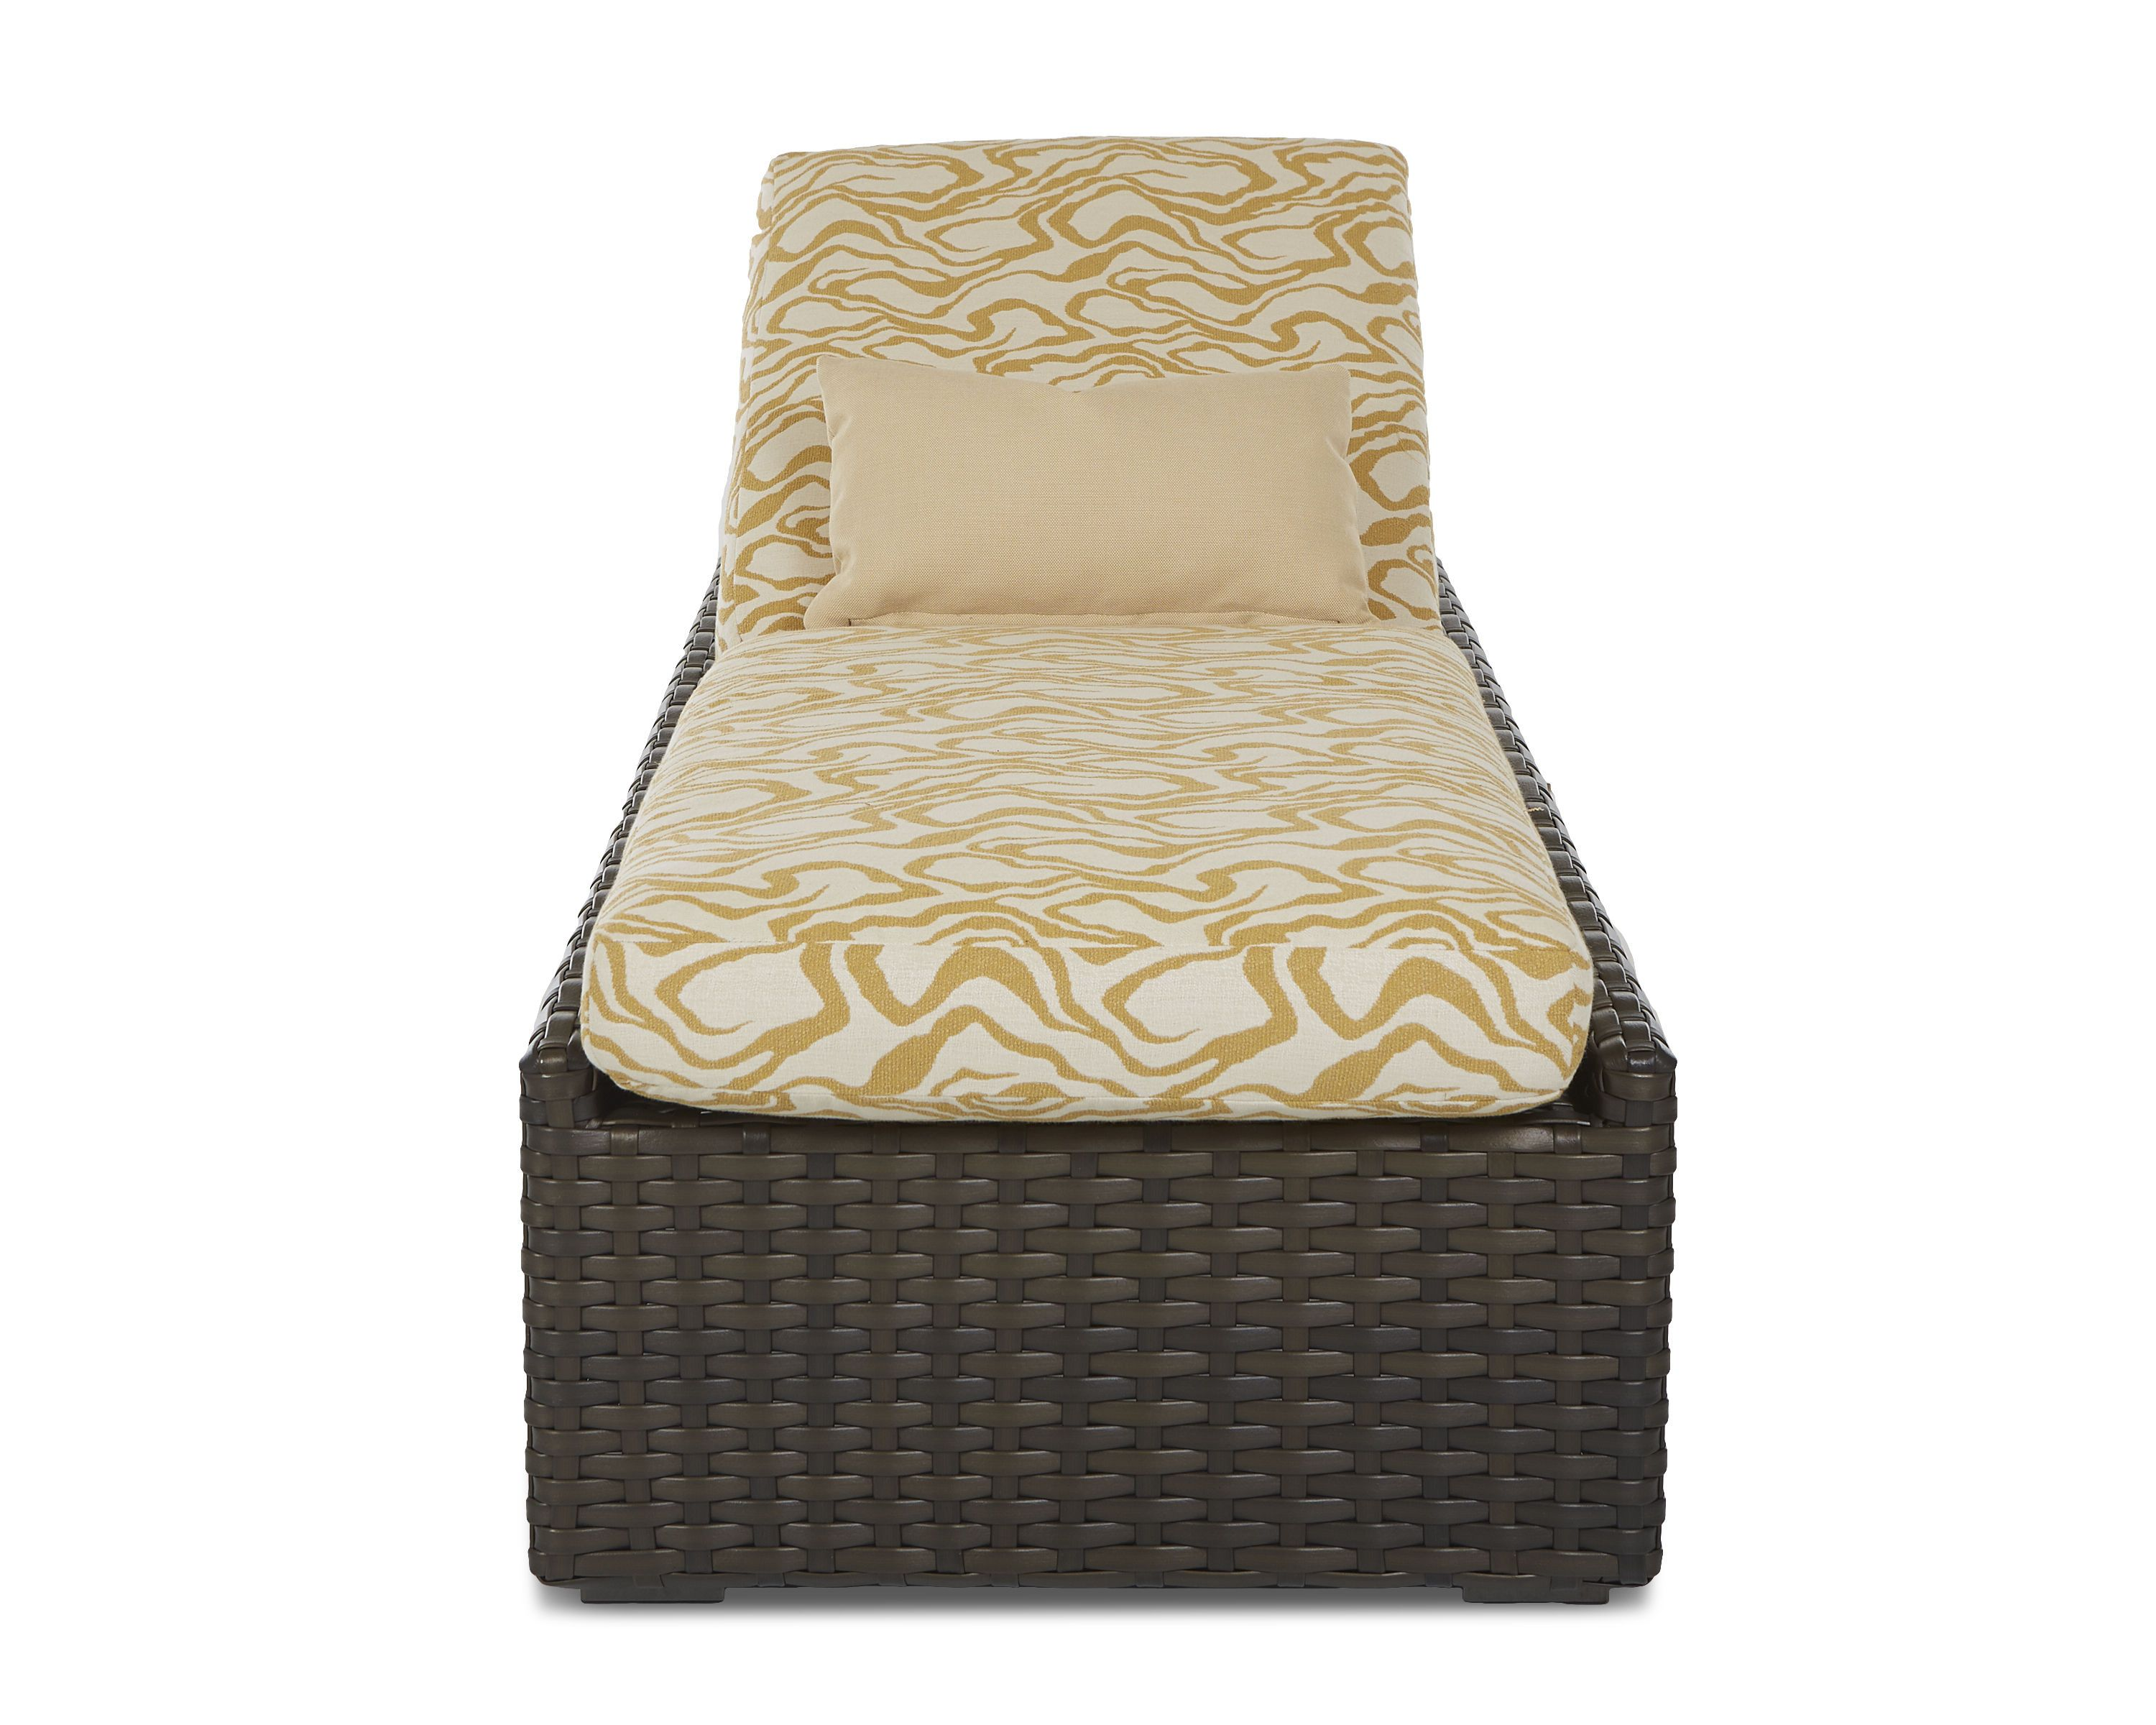 Klaussner Outdoor Outdoor/Patio Cassley Chaise W1100 CHASE - Klaussner Outdoor - Asheboro, NC